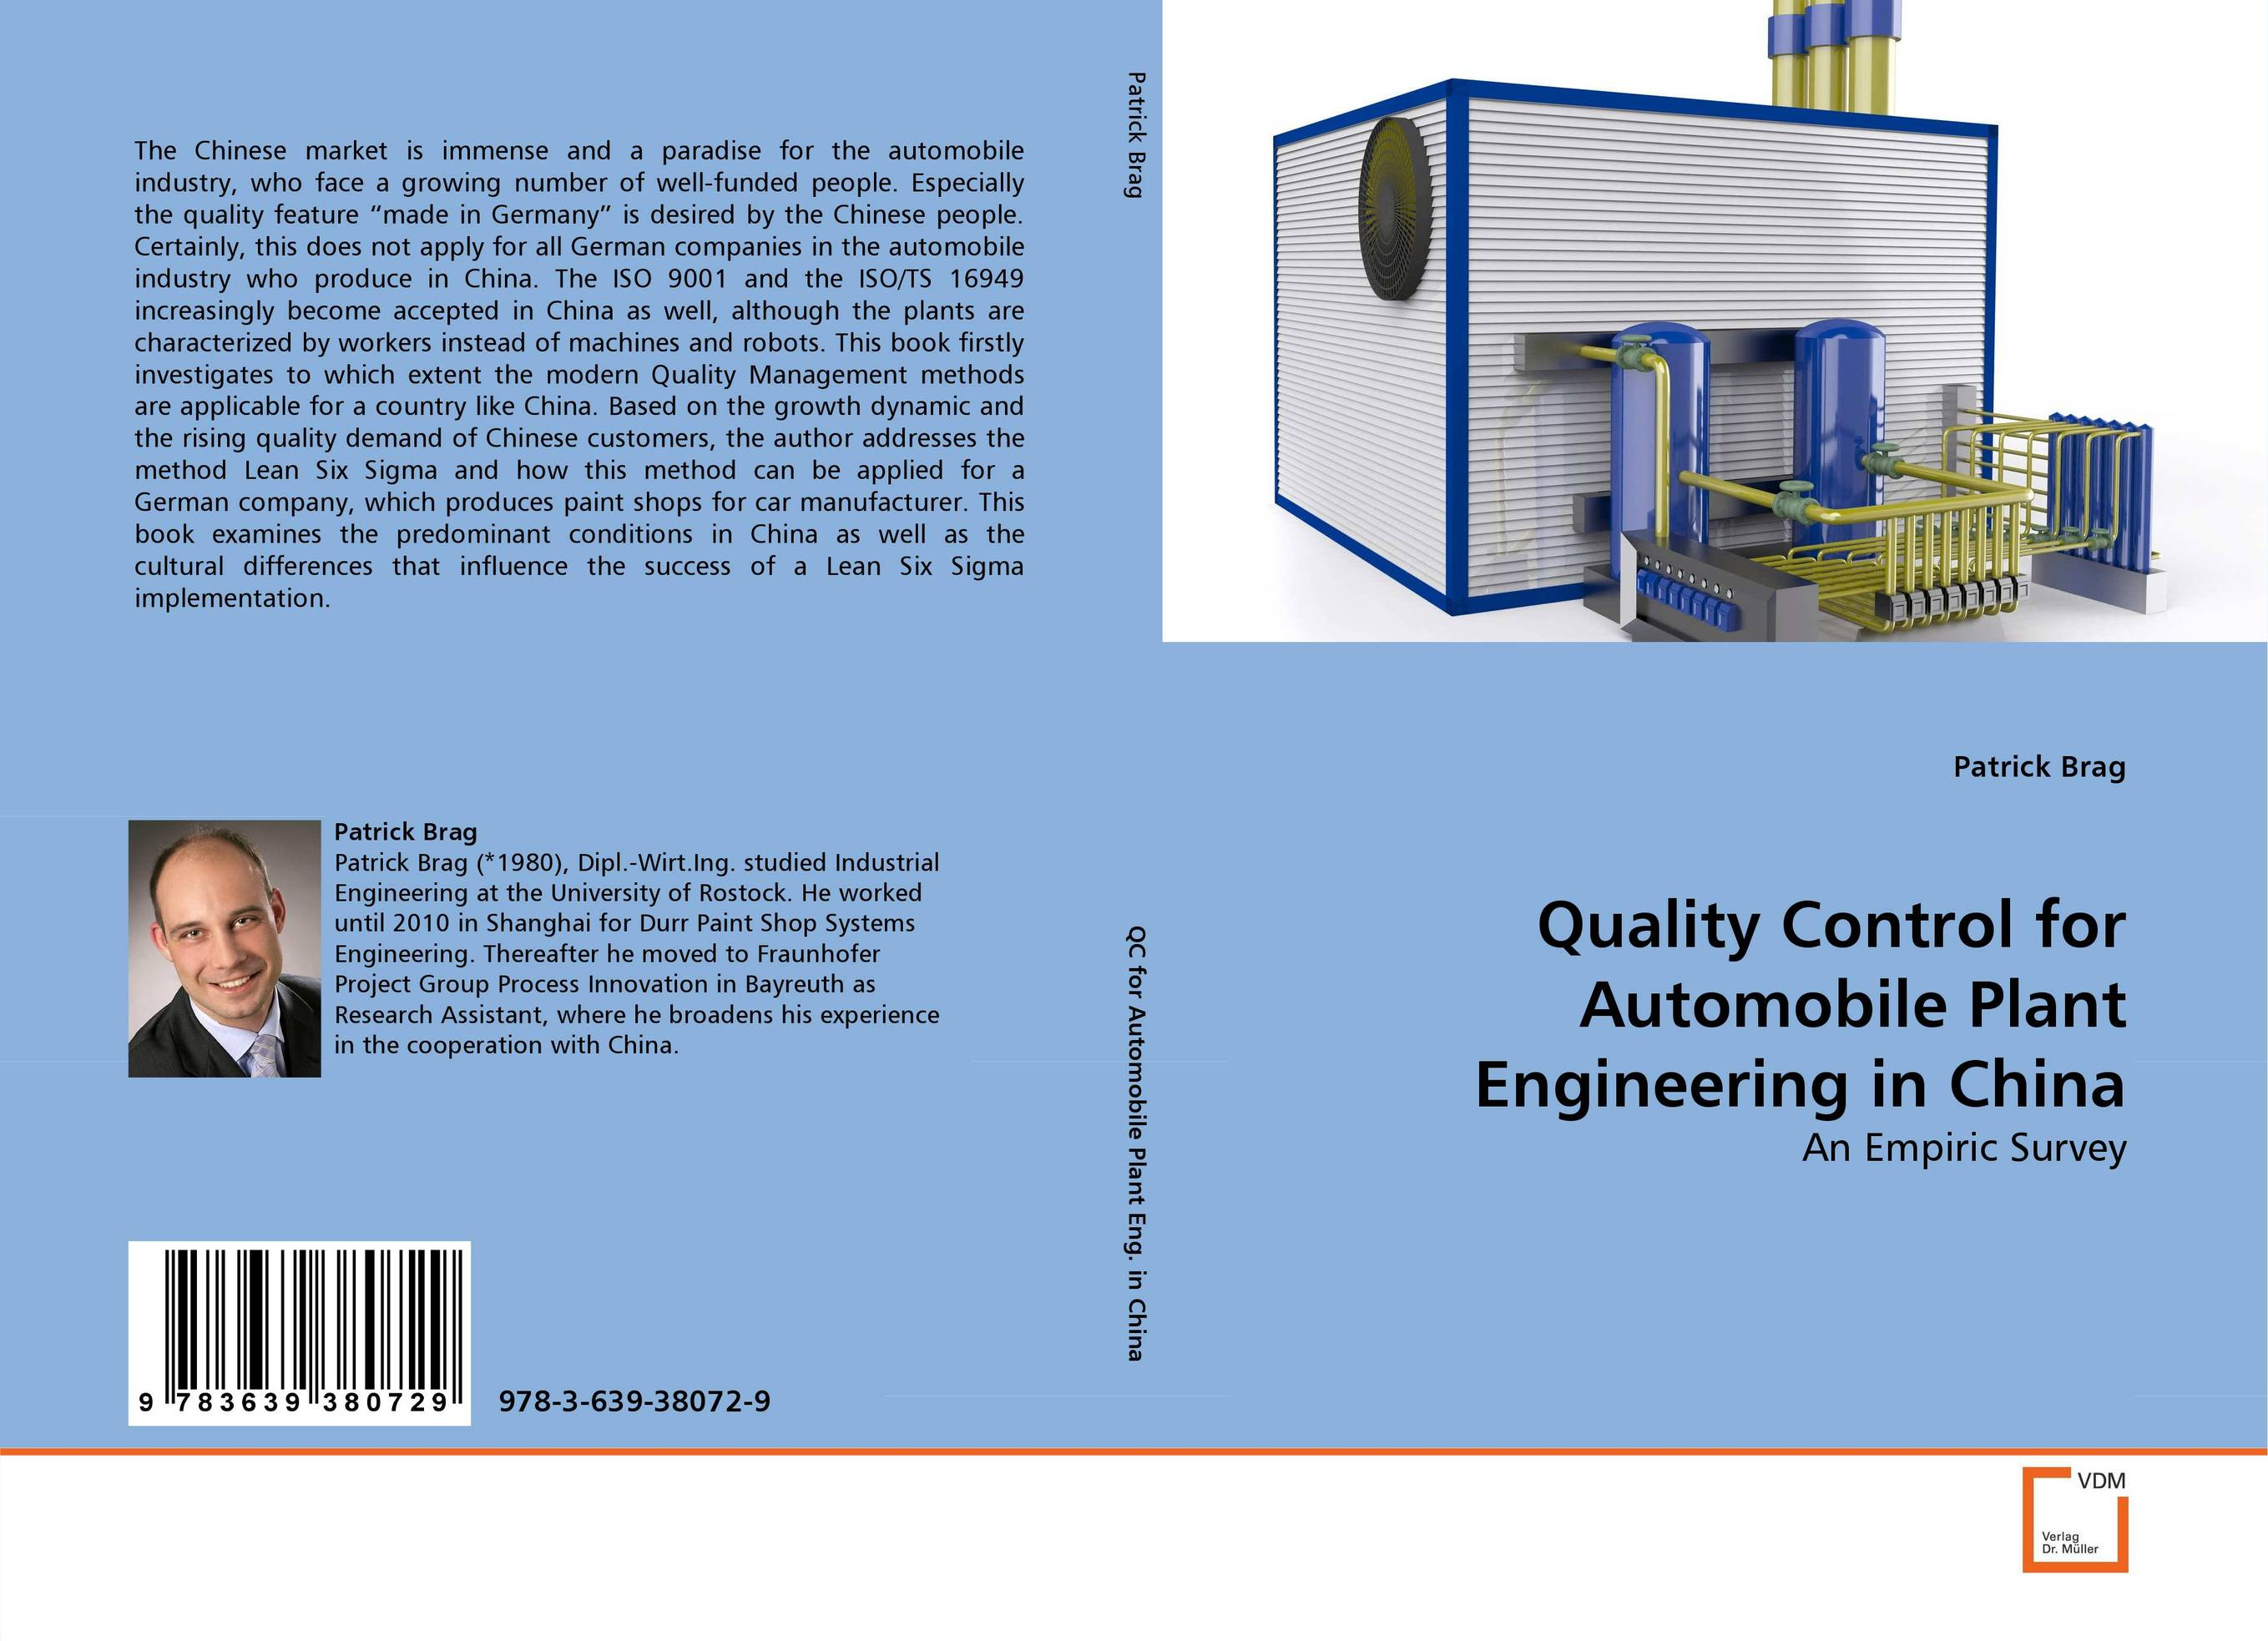 Quality Control for Automobile Plant Engineering in China lean six sigma for dummies